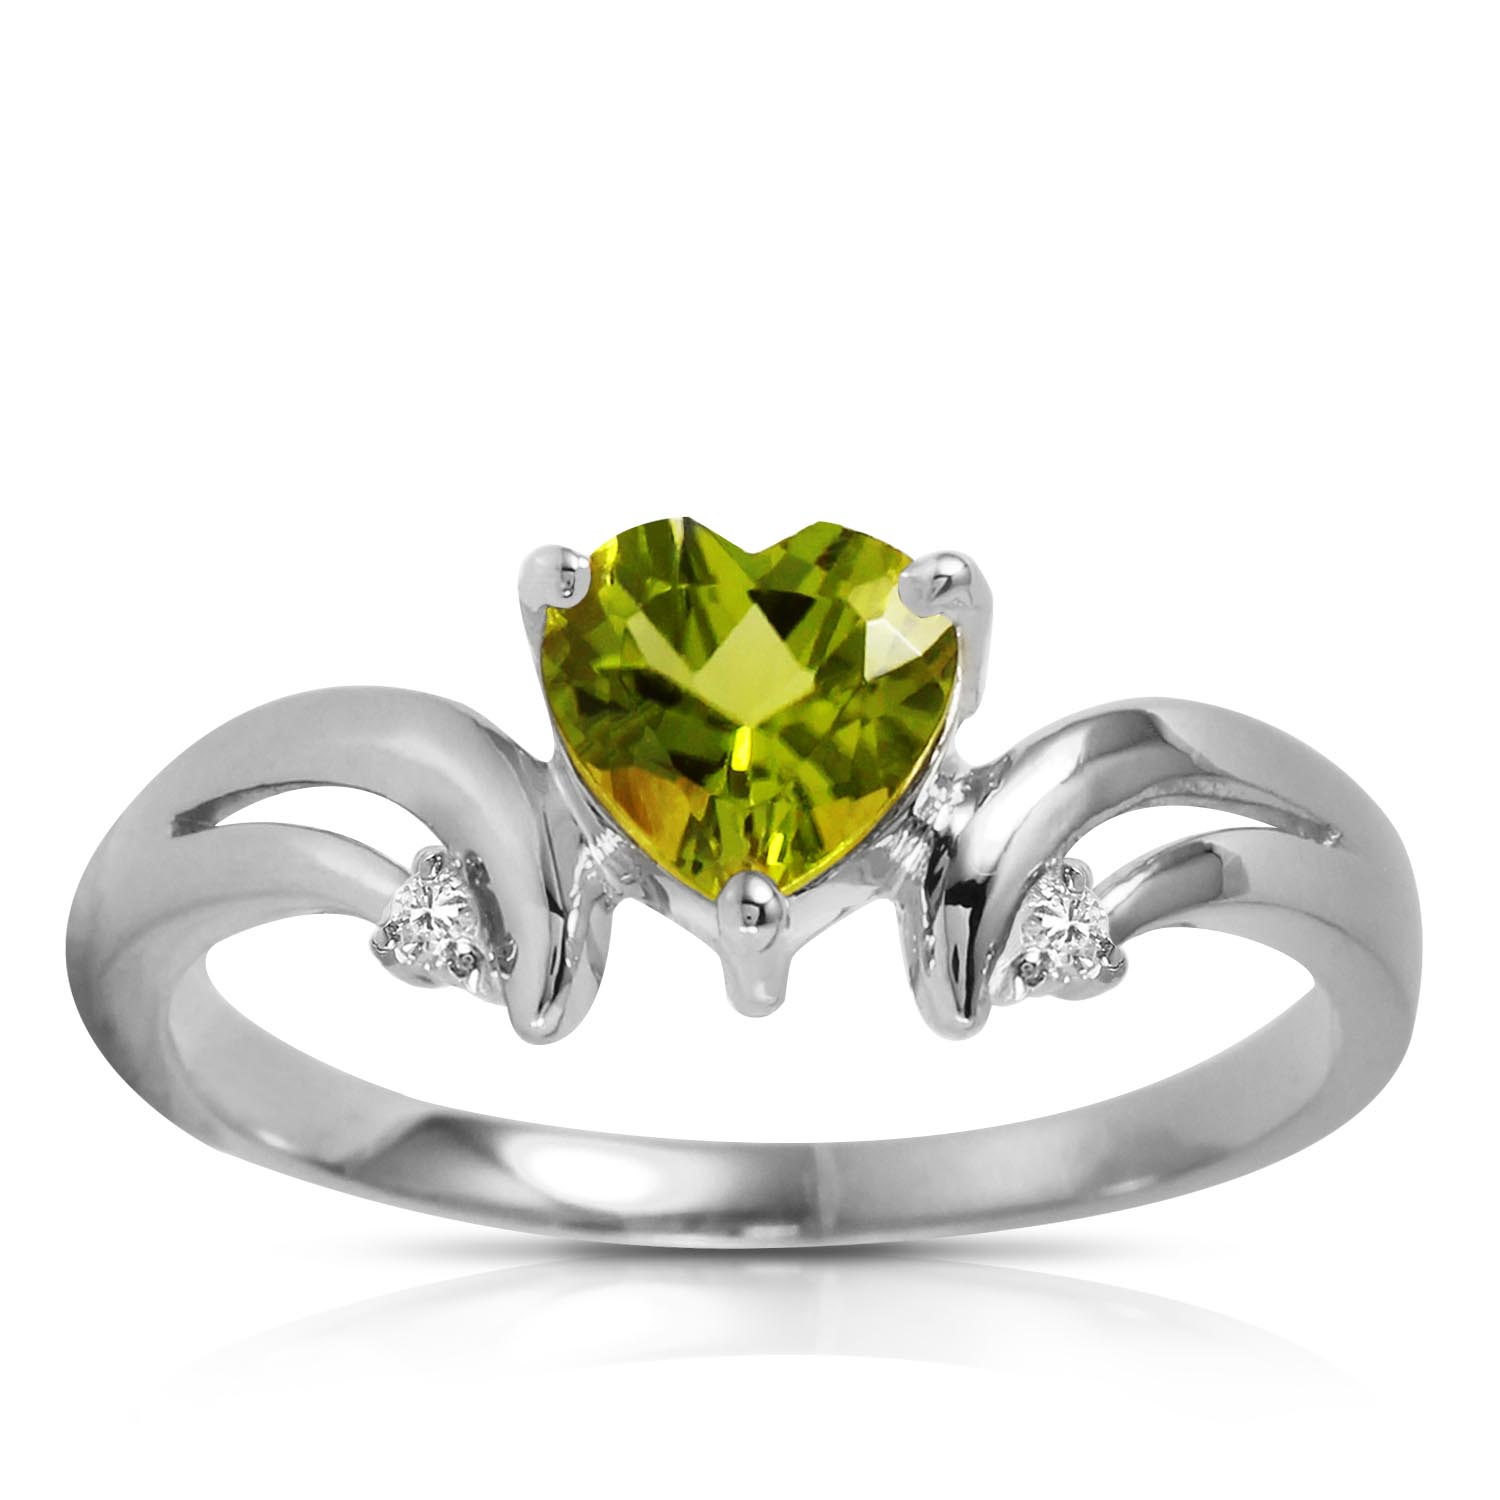 Peridot and Diamond Ring 1.25ct in 9ct White Gold